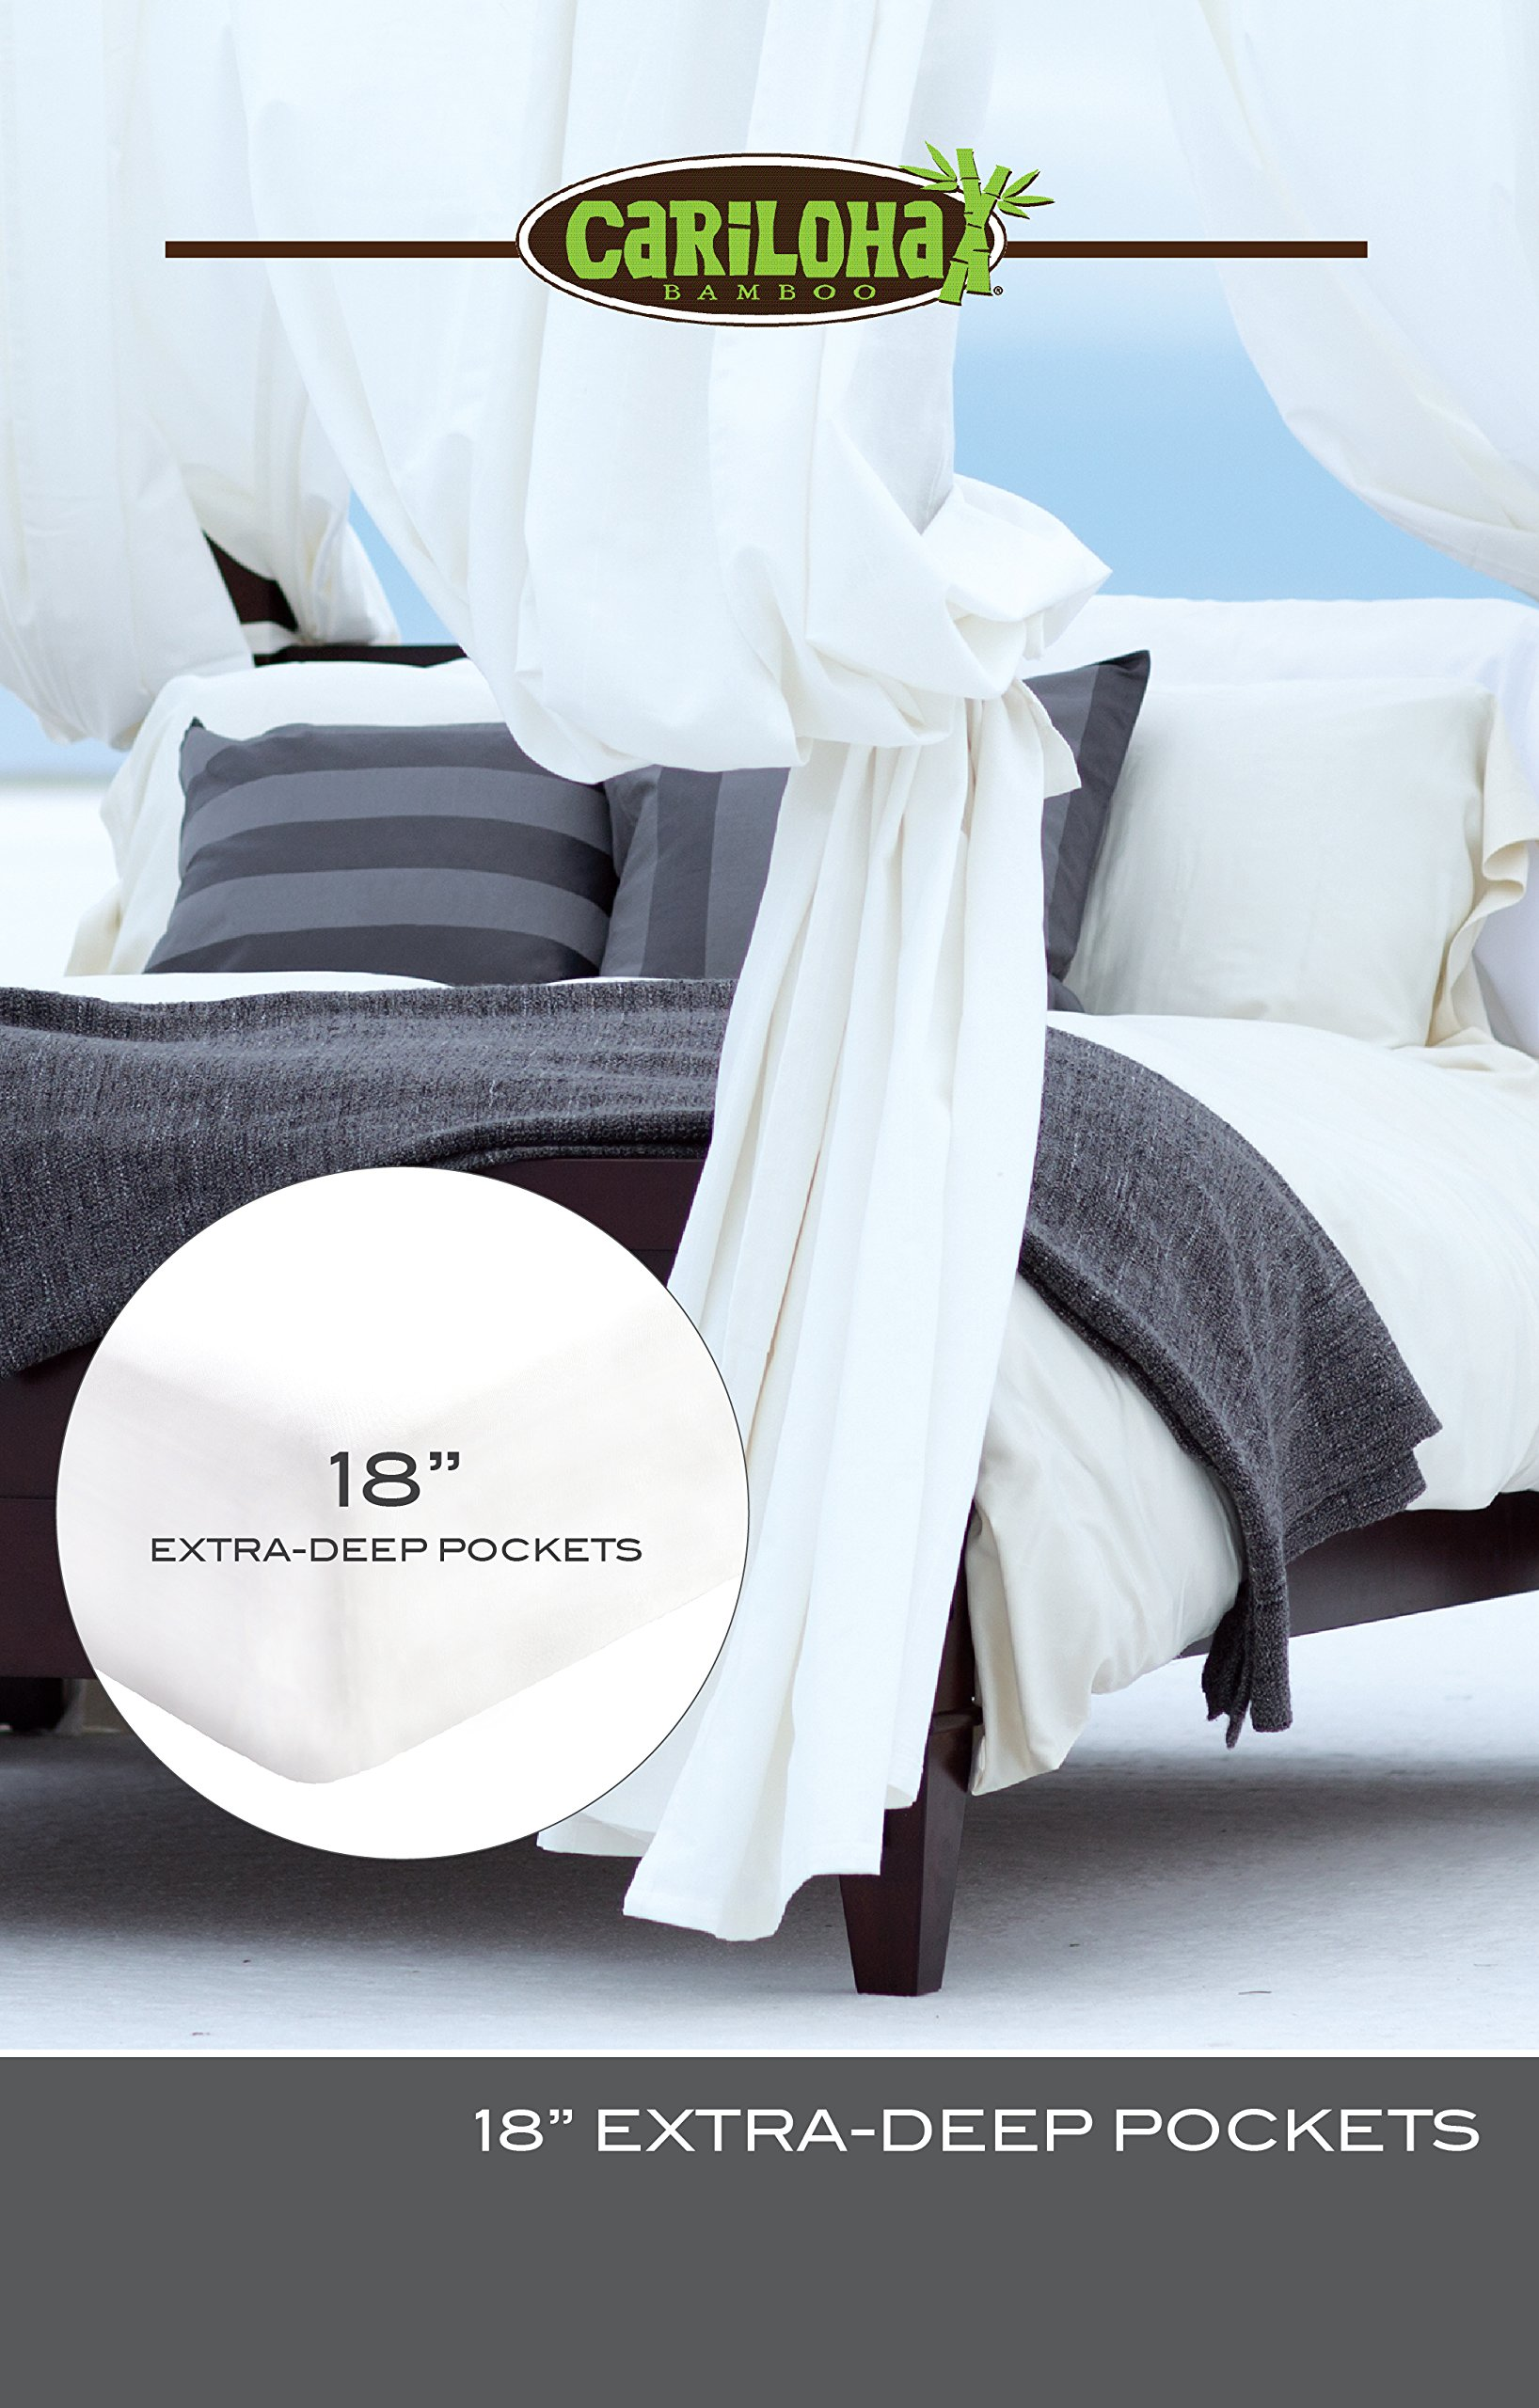 Classic Bamboo Sheets by Cariloha - 4 Piece Bed Sheet Set - Softest Bed Sheets and Pillow Cases - Lifetime Protection (King, Sandy Shore) by Cariloha (Image #6)